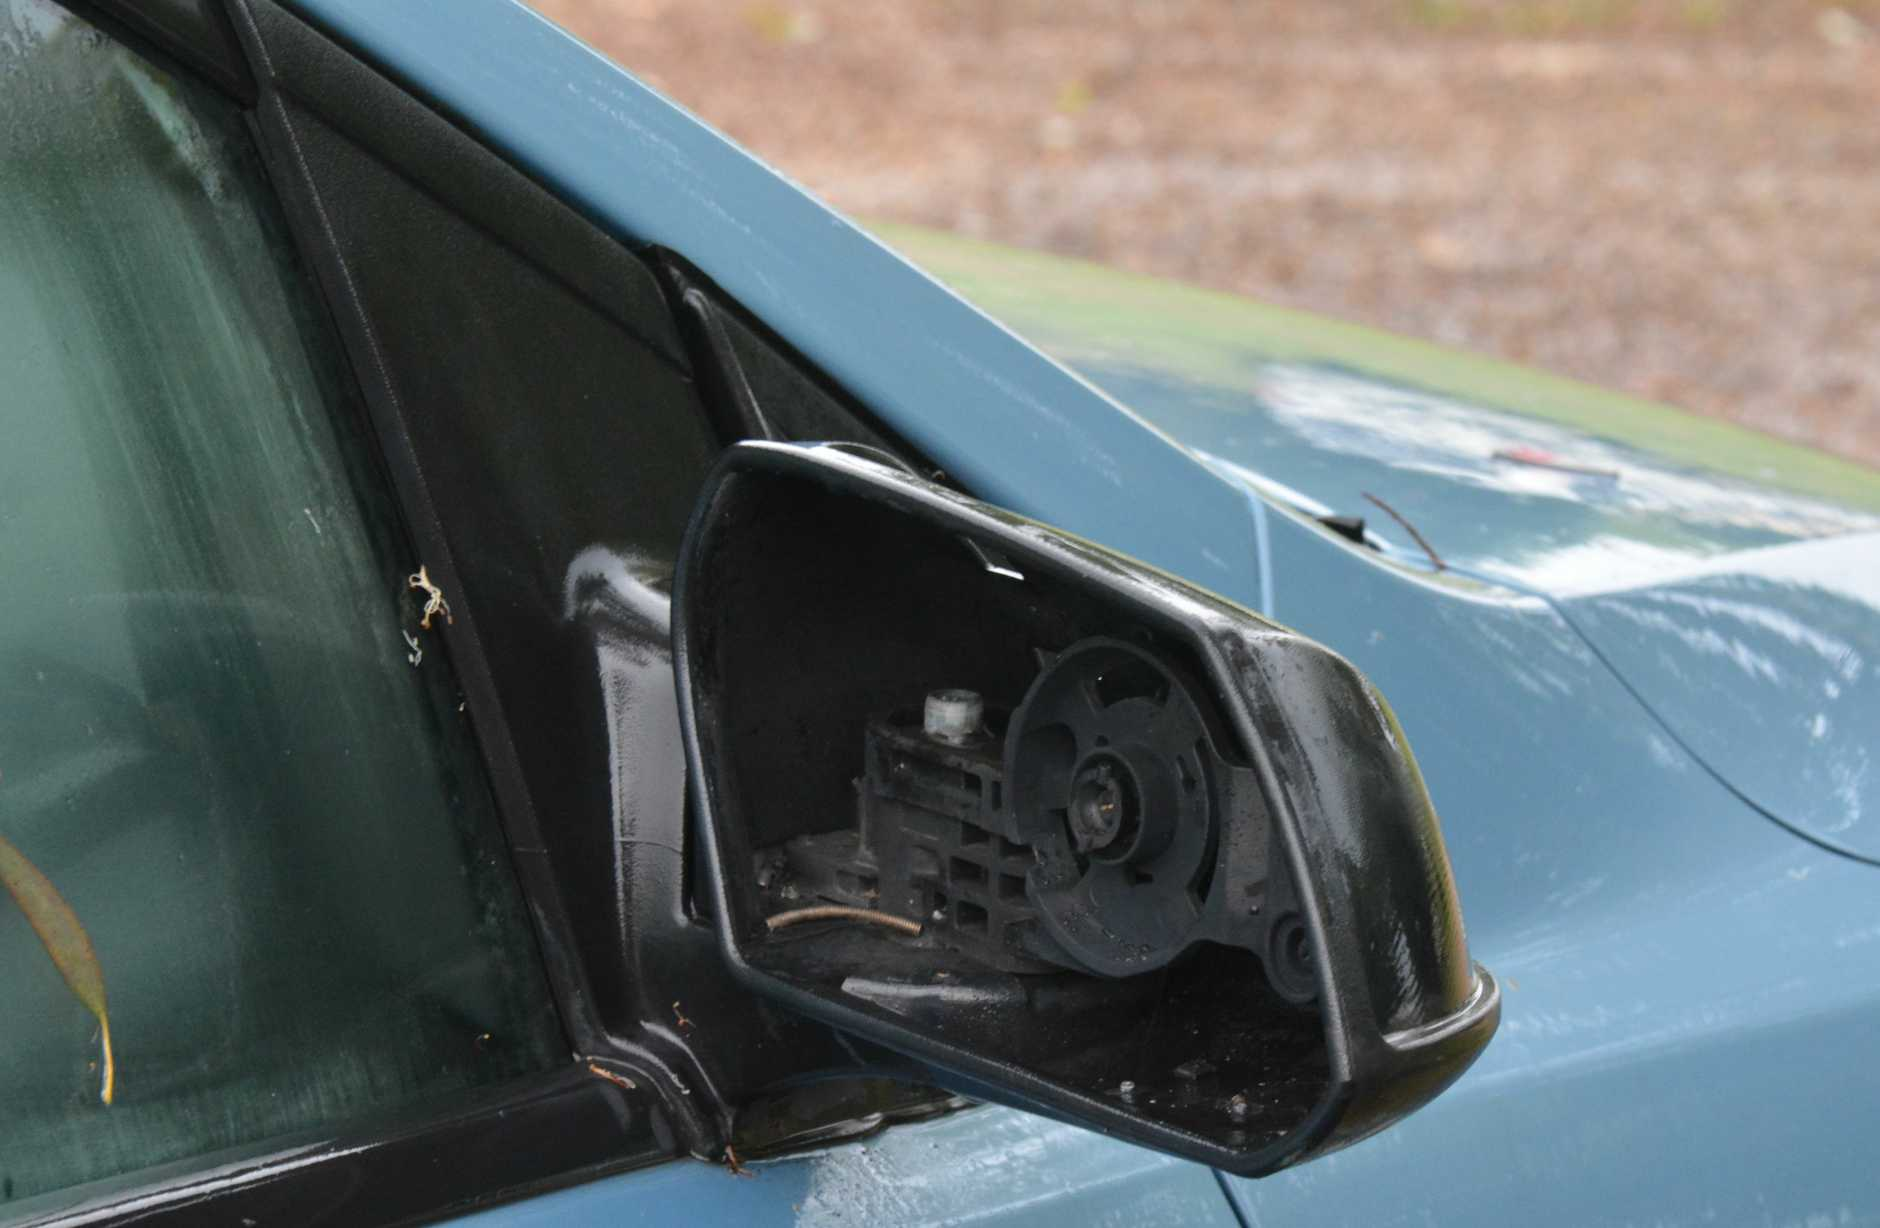 Lightning destroyed a side mirror parked behind the South Burnett Times office.